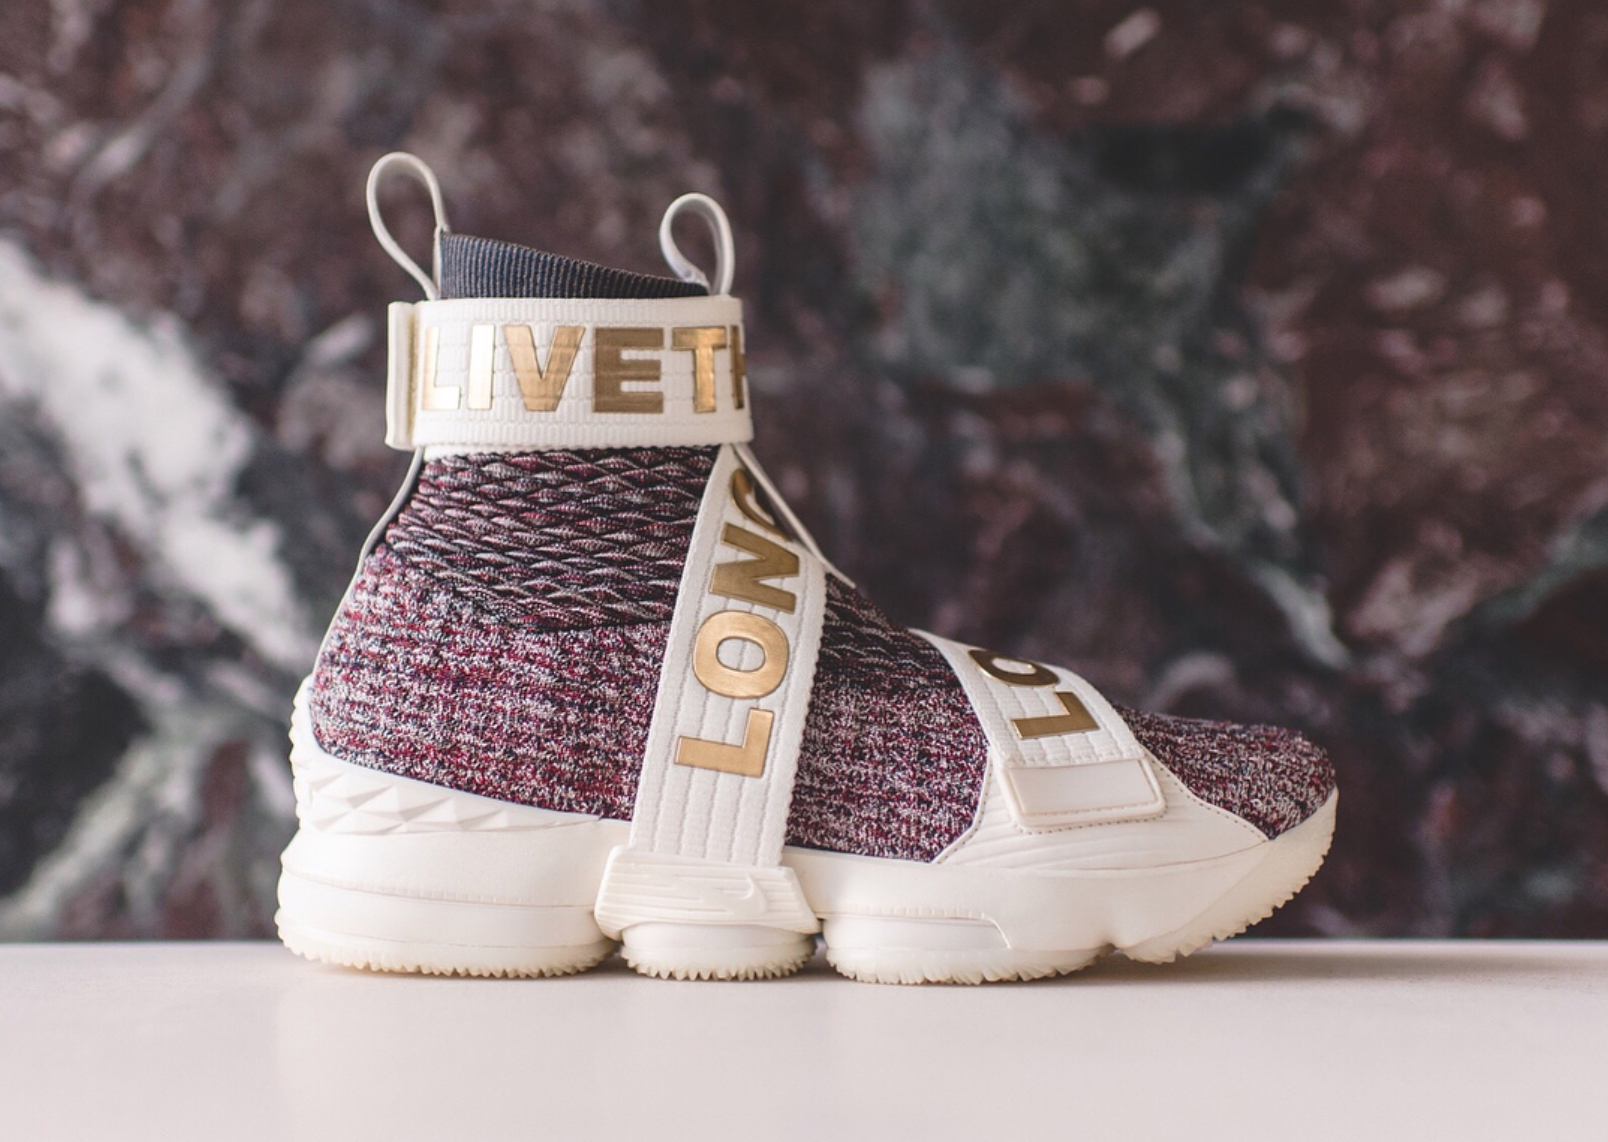 timeless design d3594 cc3b6 Kith Unveils the Nike LeBron Lifestyle 15 and its Unique ...